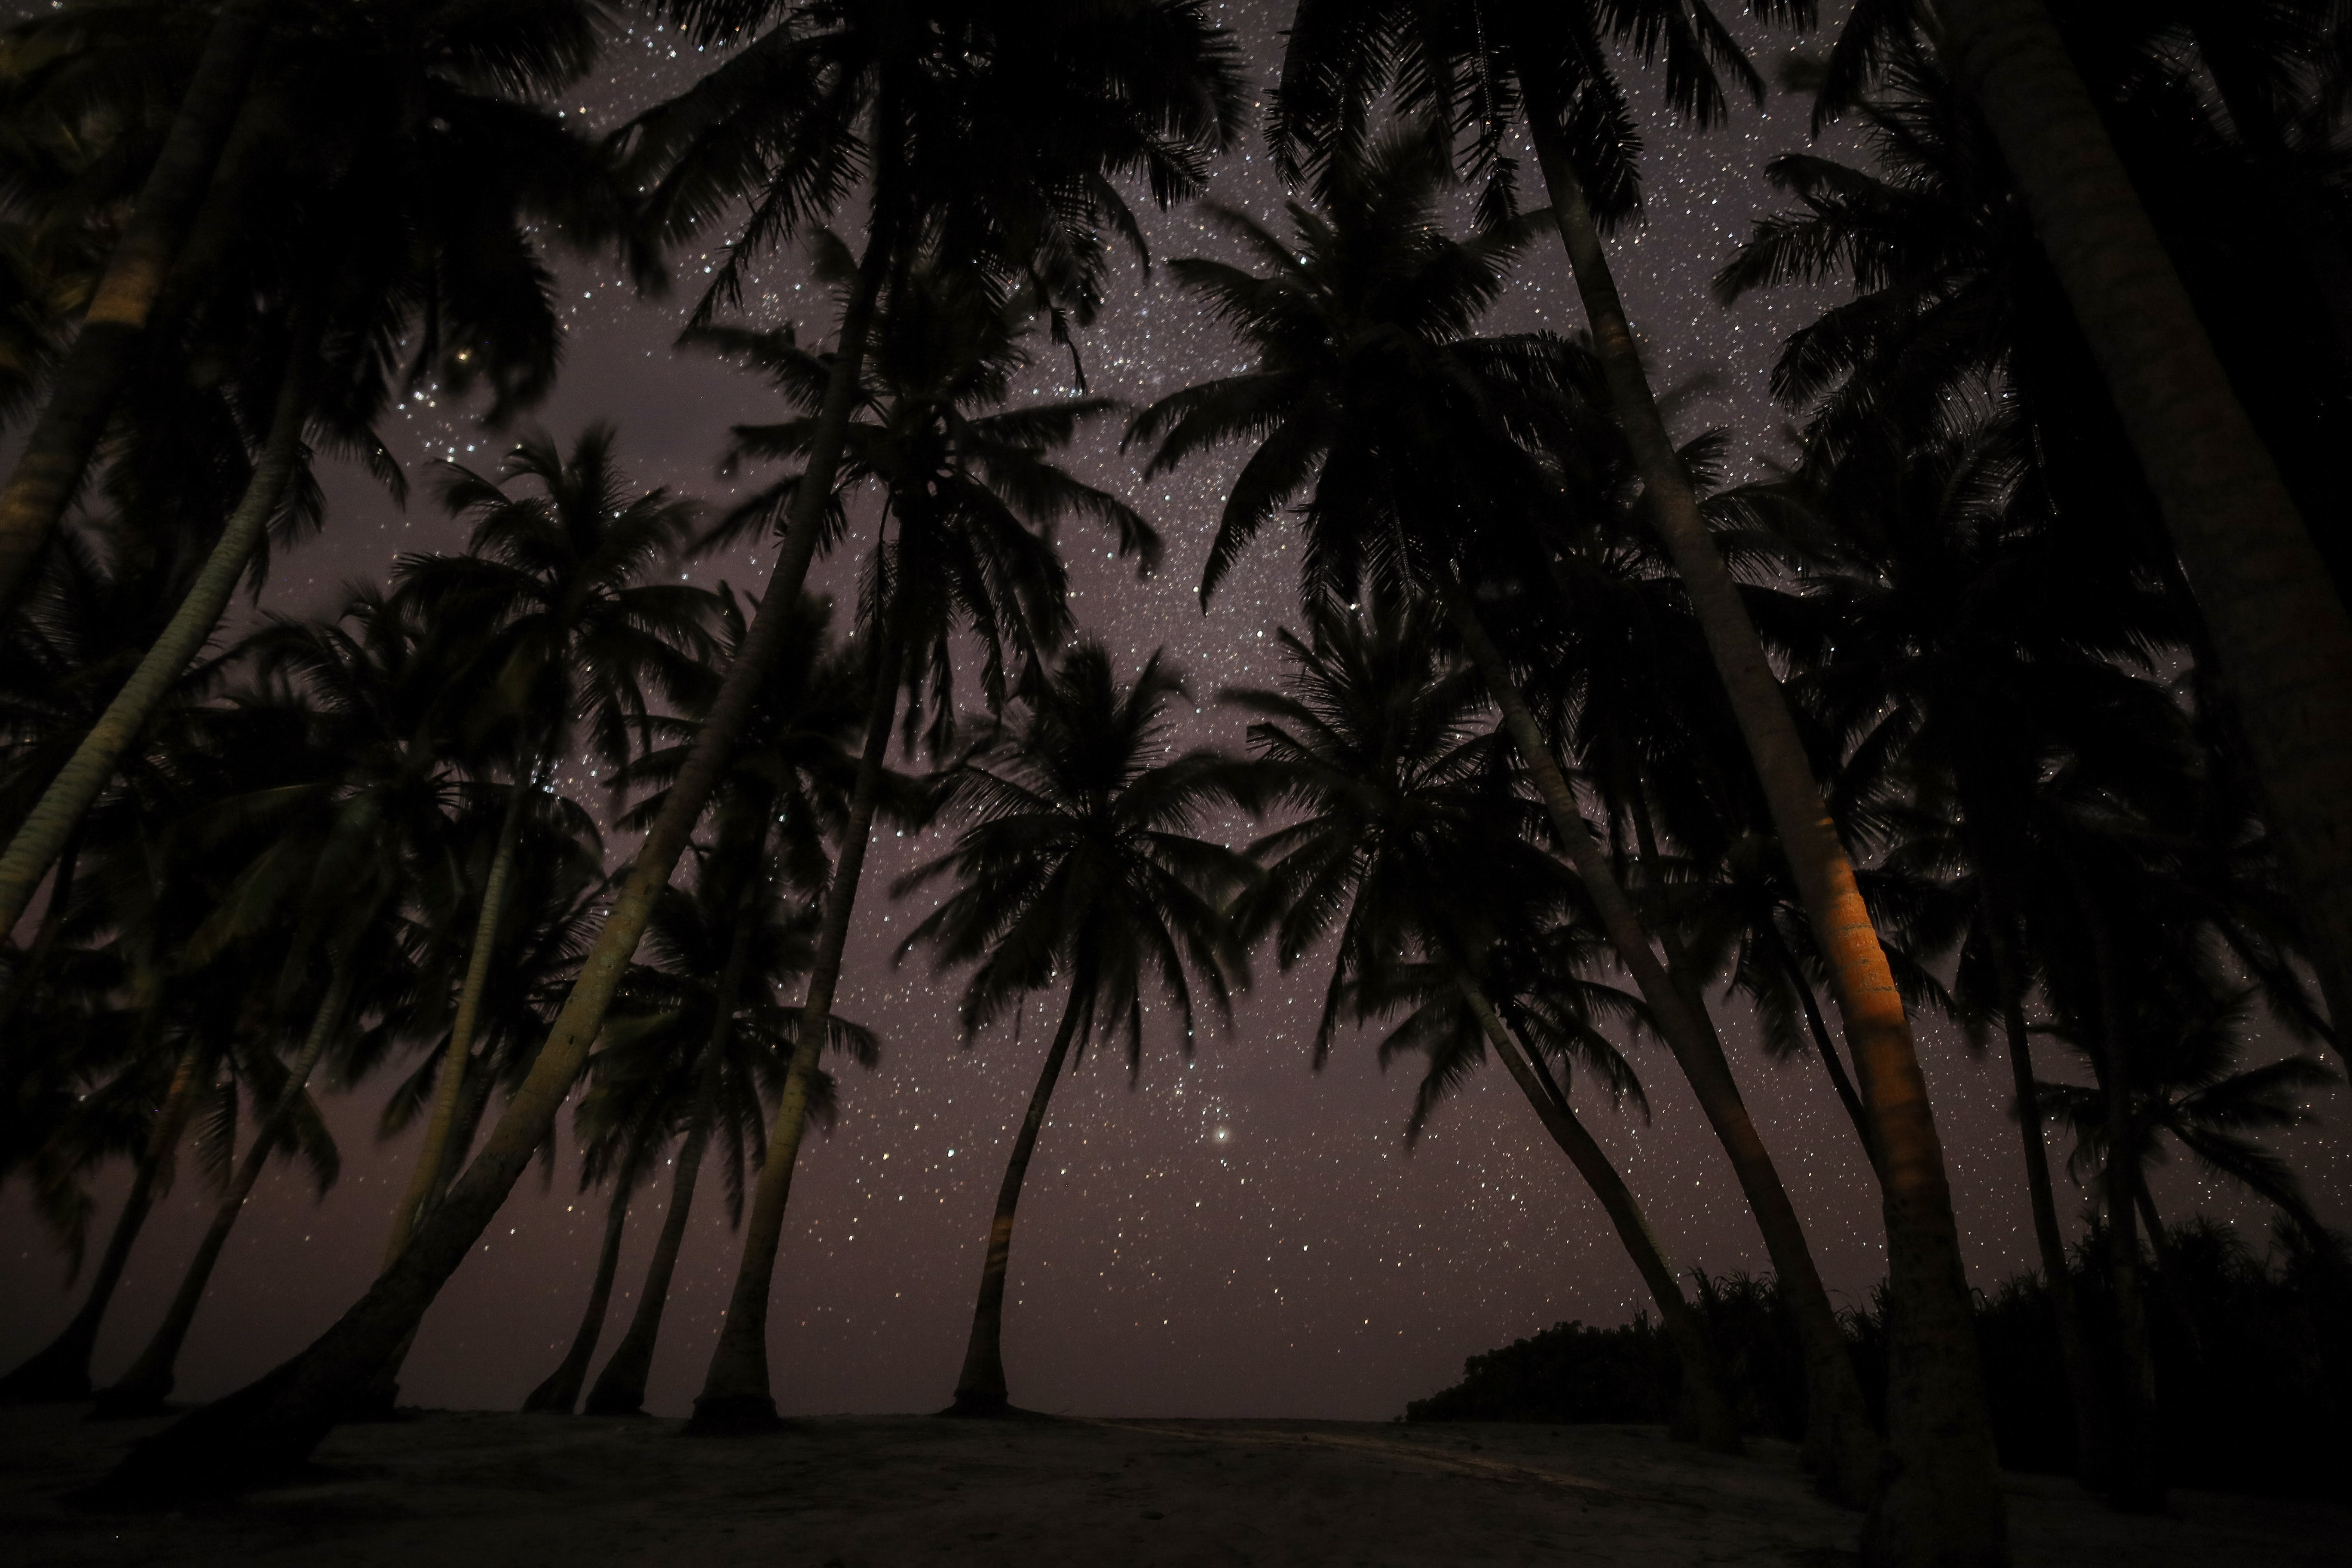 silhouette photography of coconut tress during nighttime